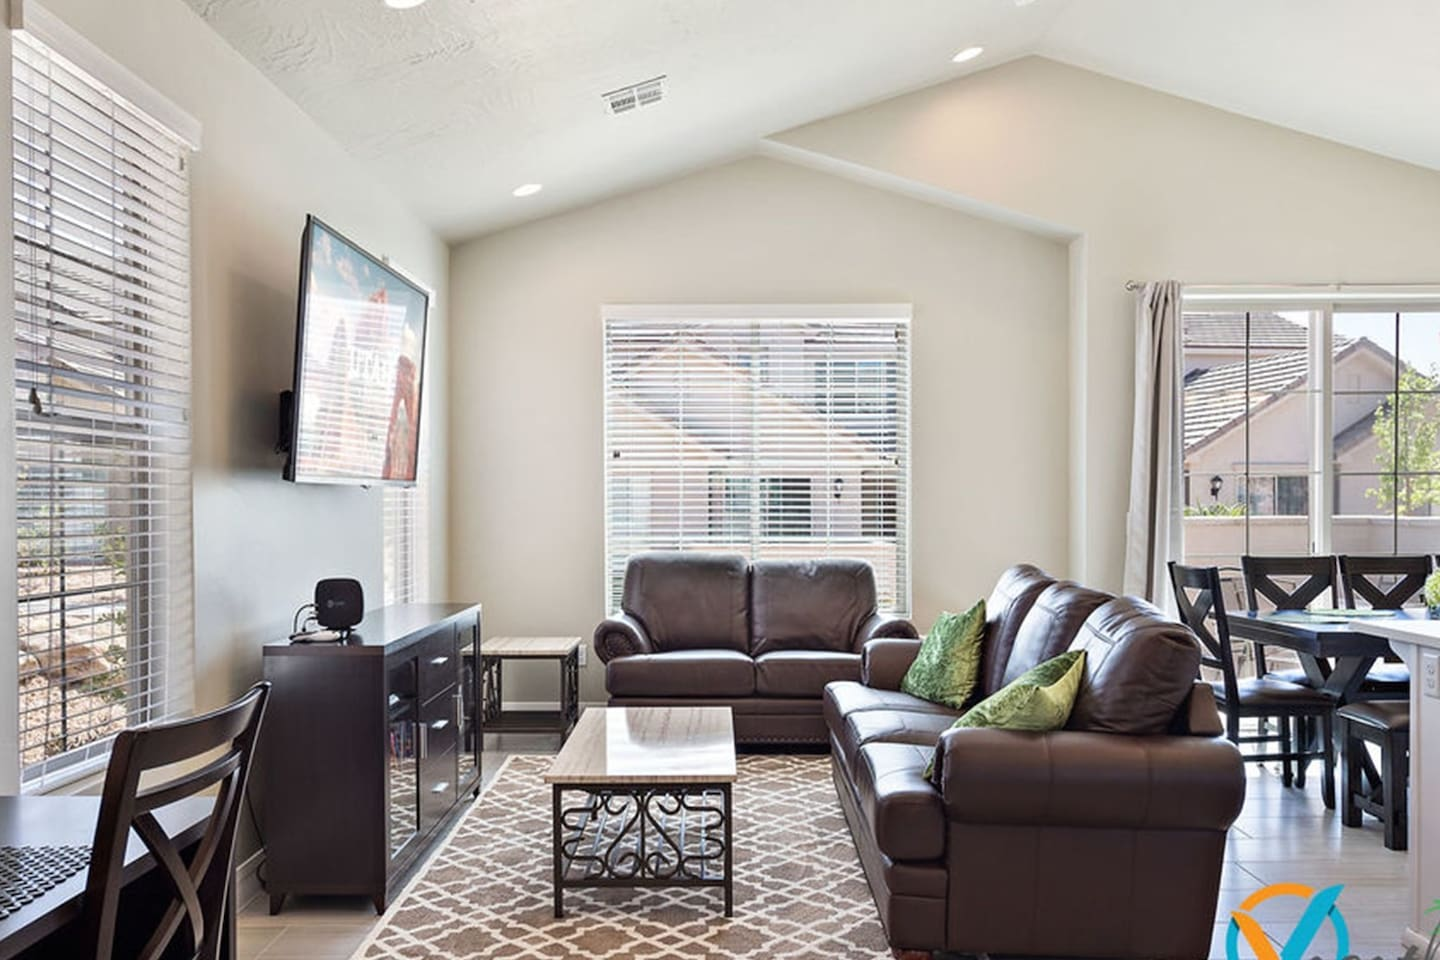 Zions Desert Star - All Master Suites Near Zion - Townhouses for ...